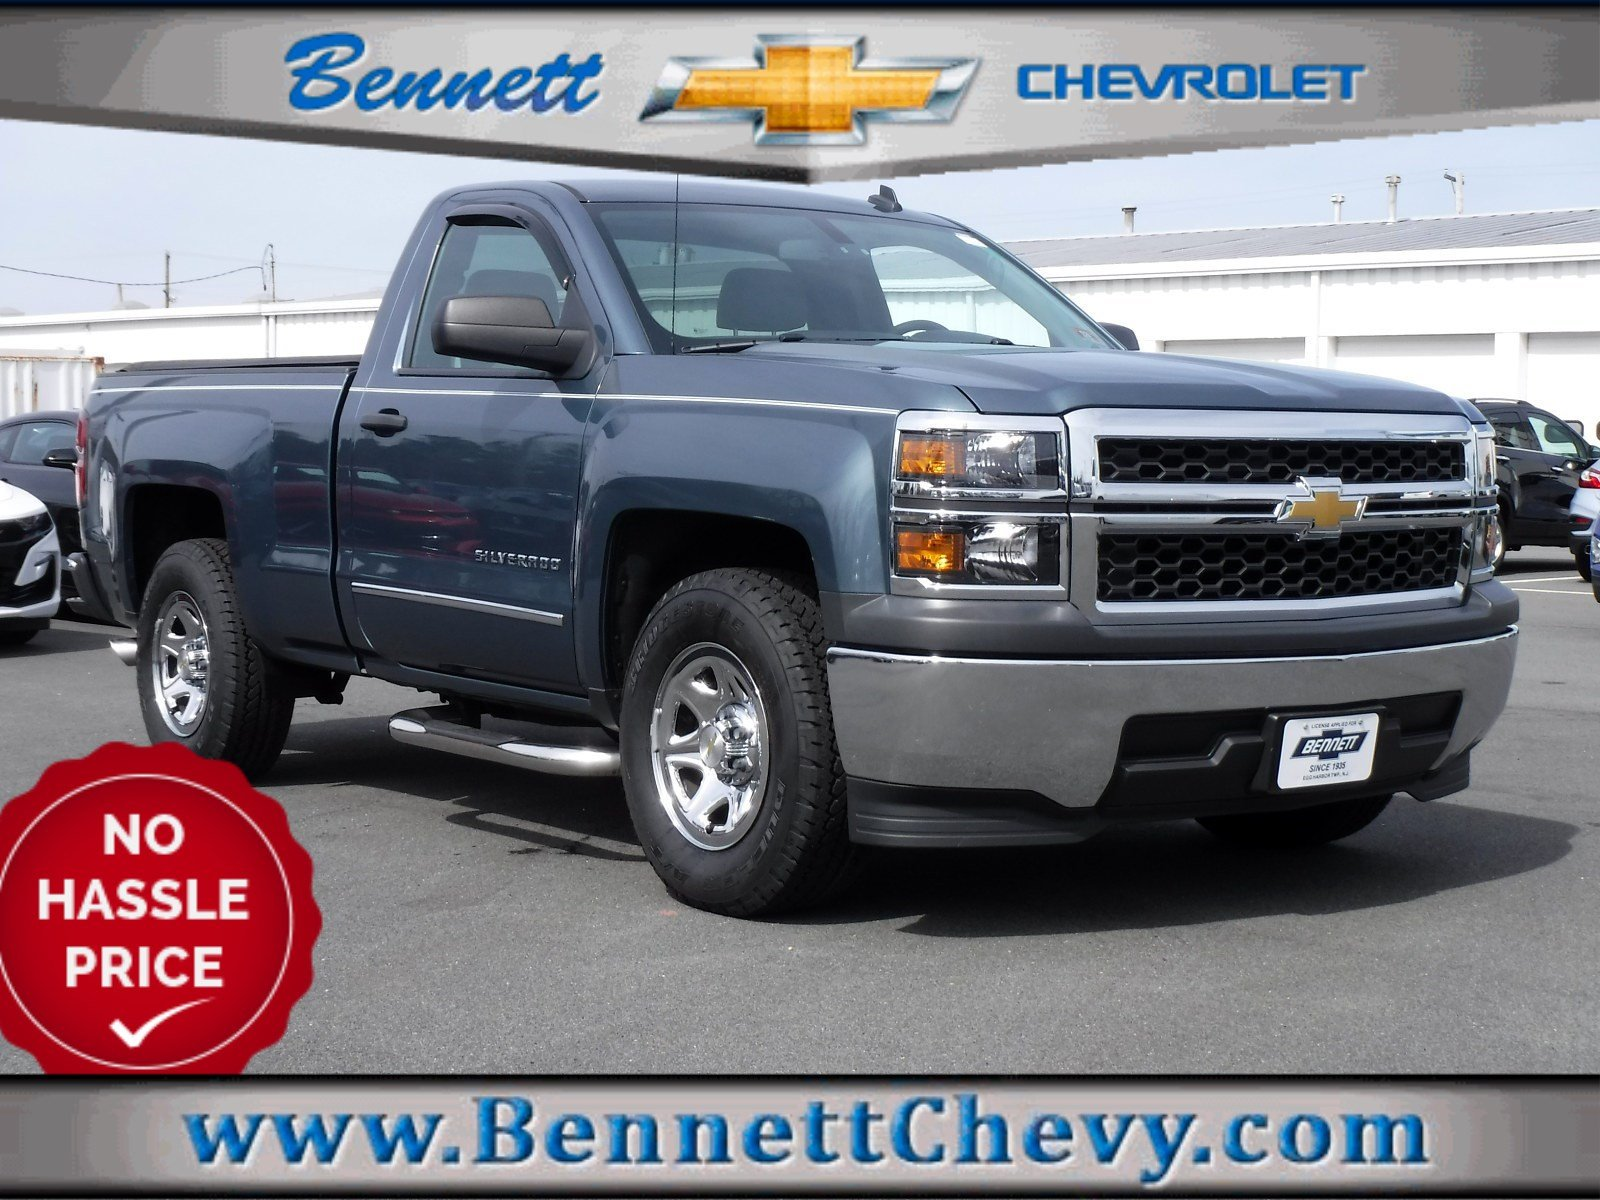 Certified Pre-Owned 2014 Chevrolet Silverado 1500 Work Truck